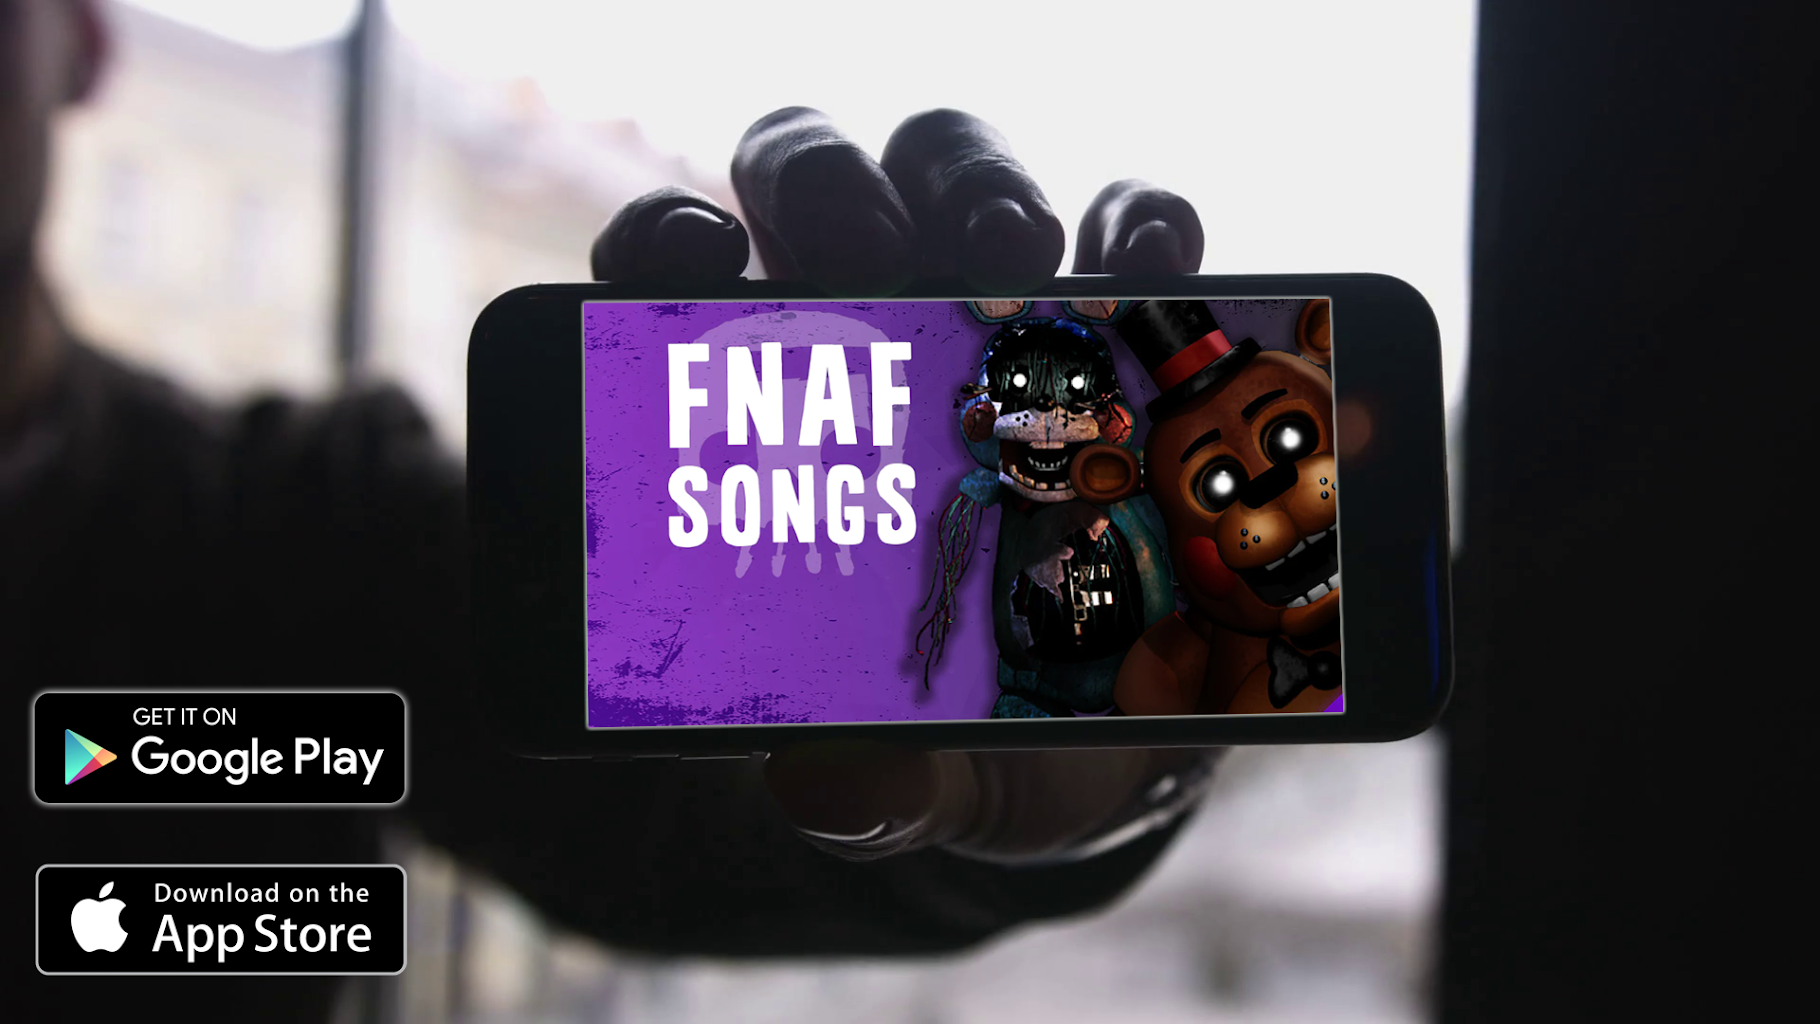 You Can't Hide Fnaf Song Roblox Id Fnaf Music Video 15 0 Apk Download Com Freddys Fnaf Five Night Freddys Qos Apk Free